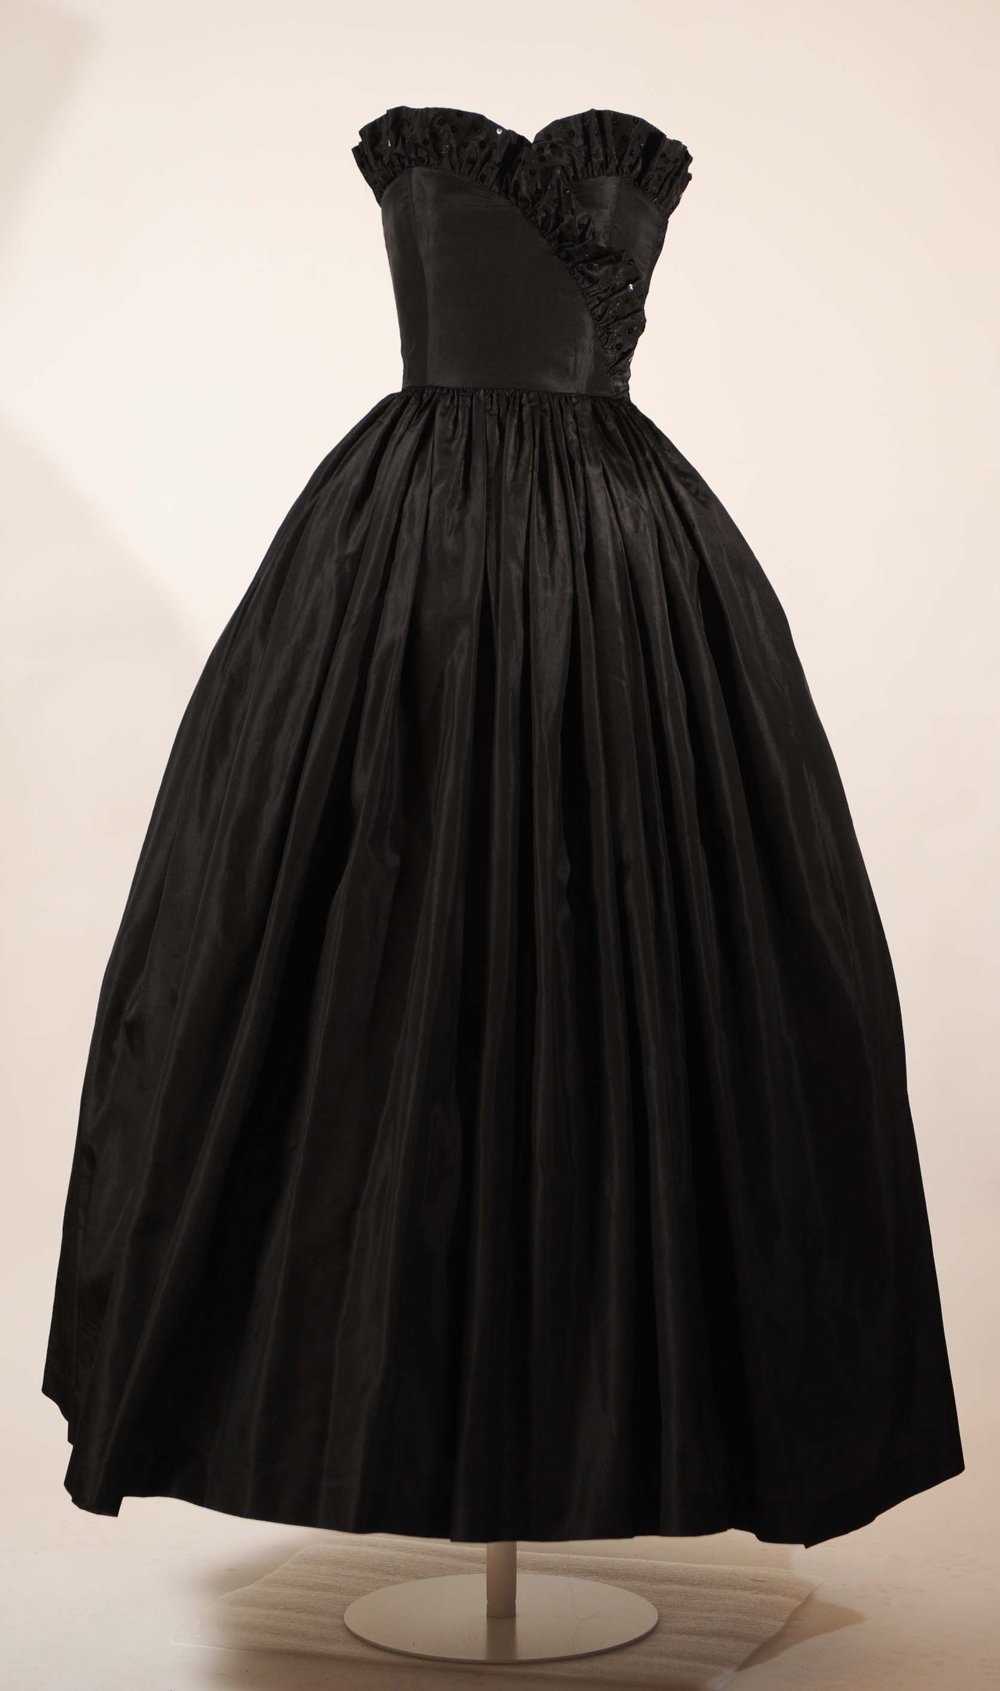 THE DRESS A DAY PROFILE CONTINUES WITH THE BLACK STRAPLESS TAFFETA ...